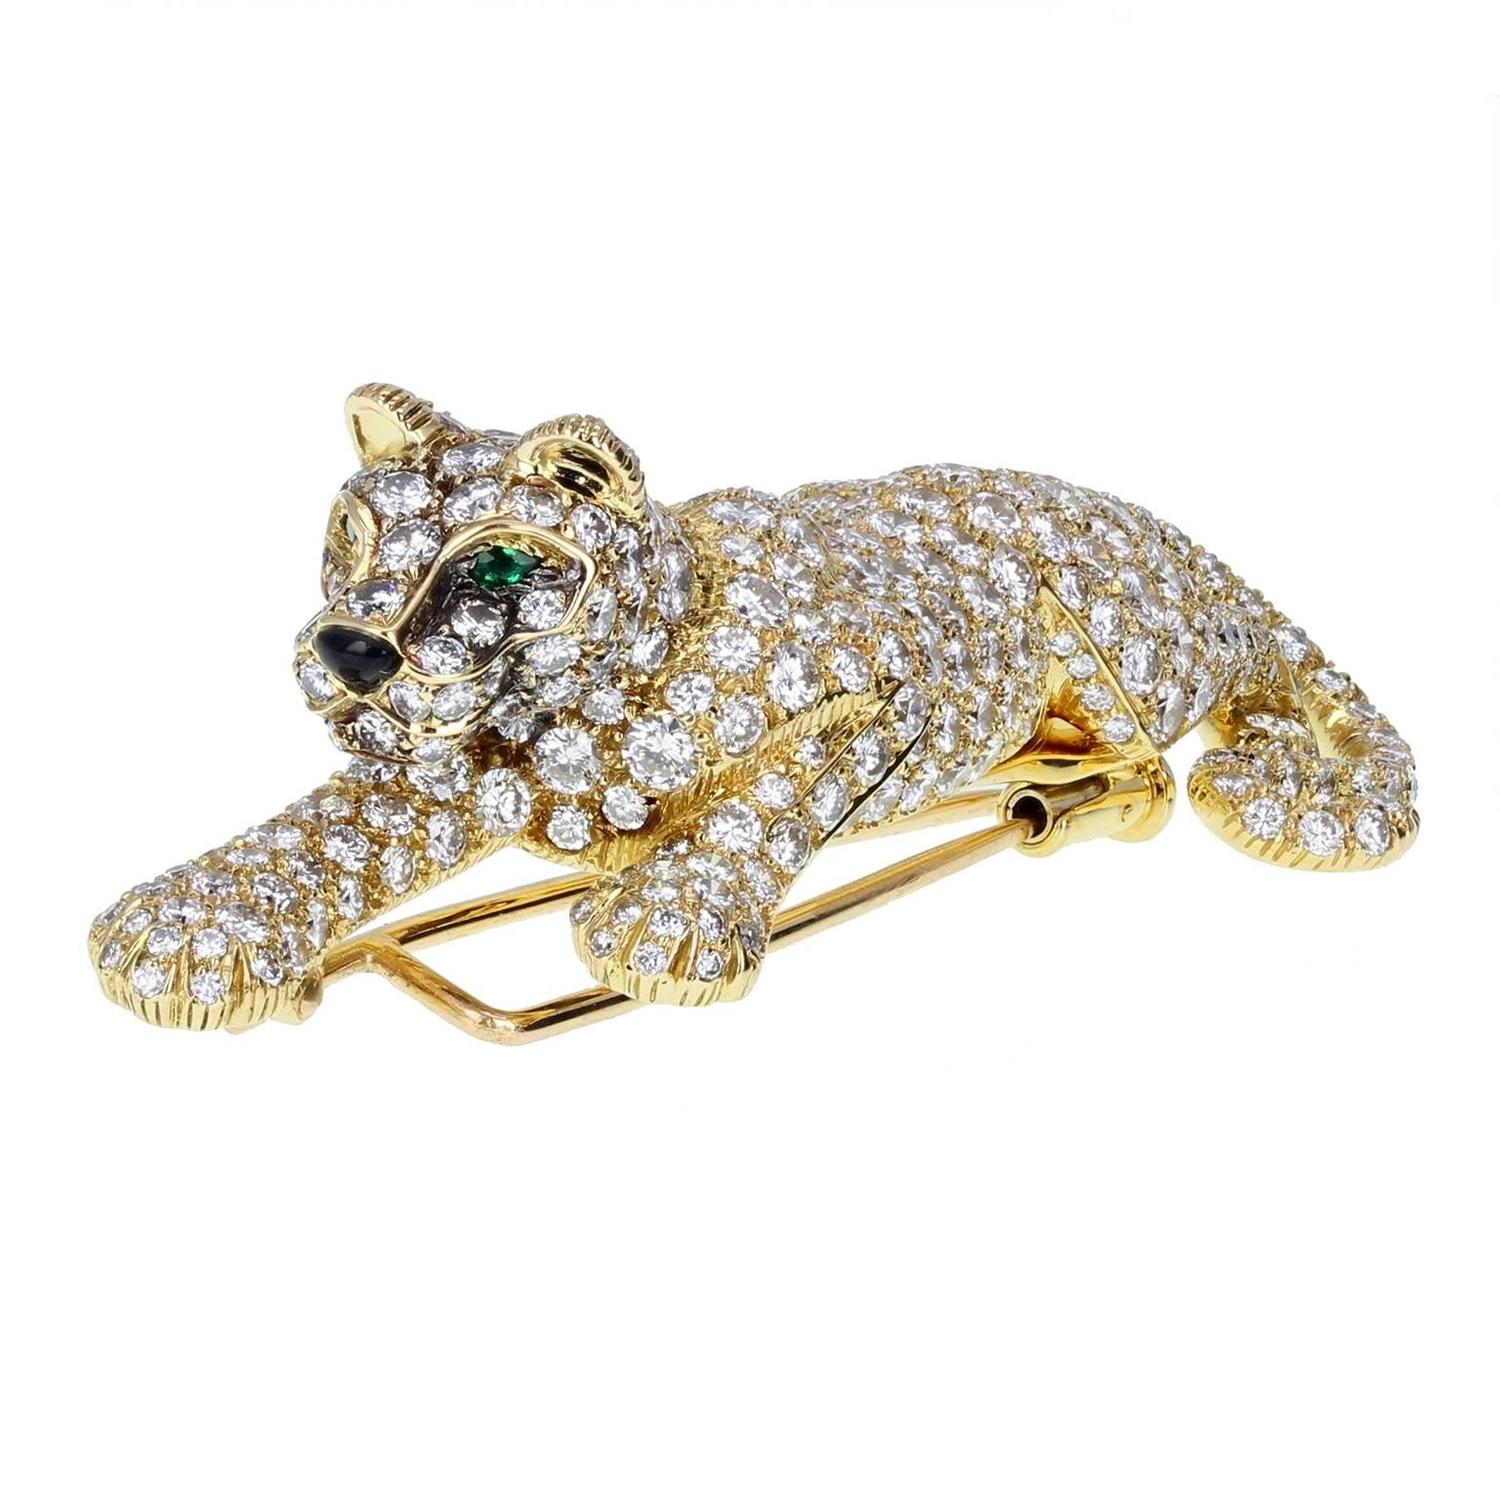 auctions sotheby en web noble s brooch ecatalogue jewels cartier magnificent lot and